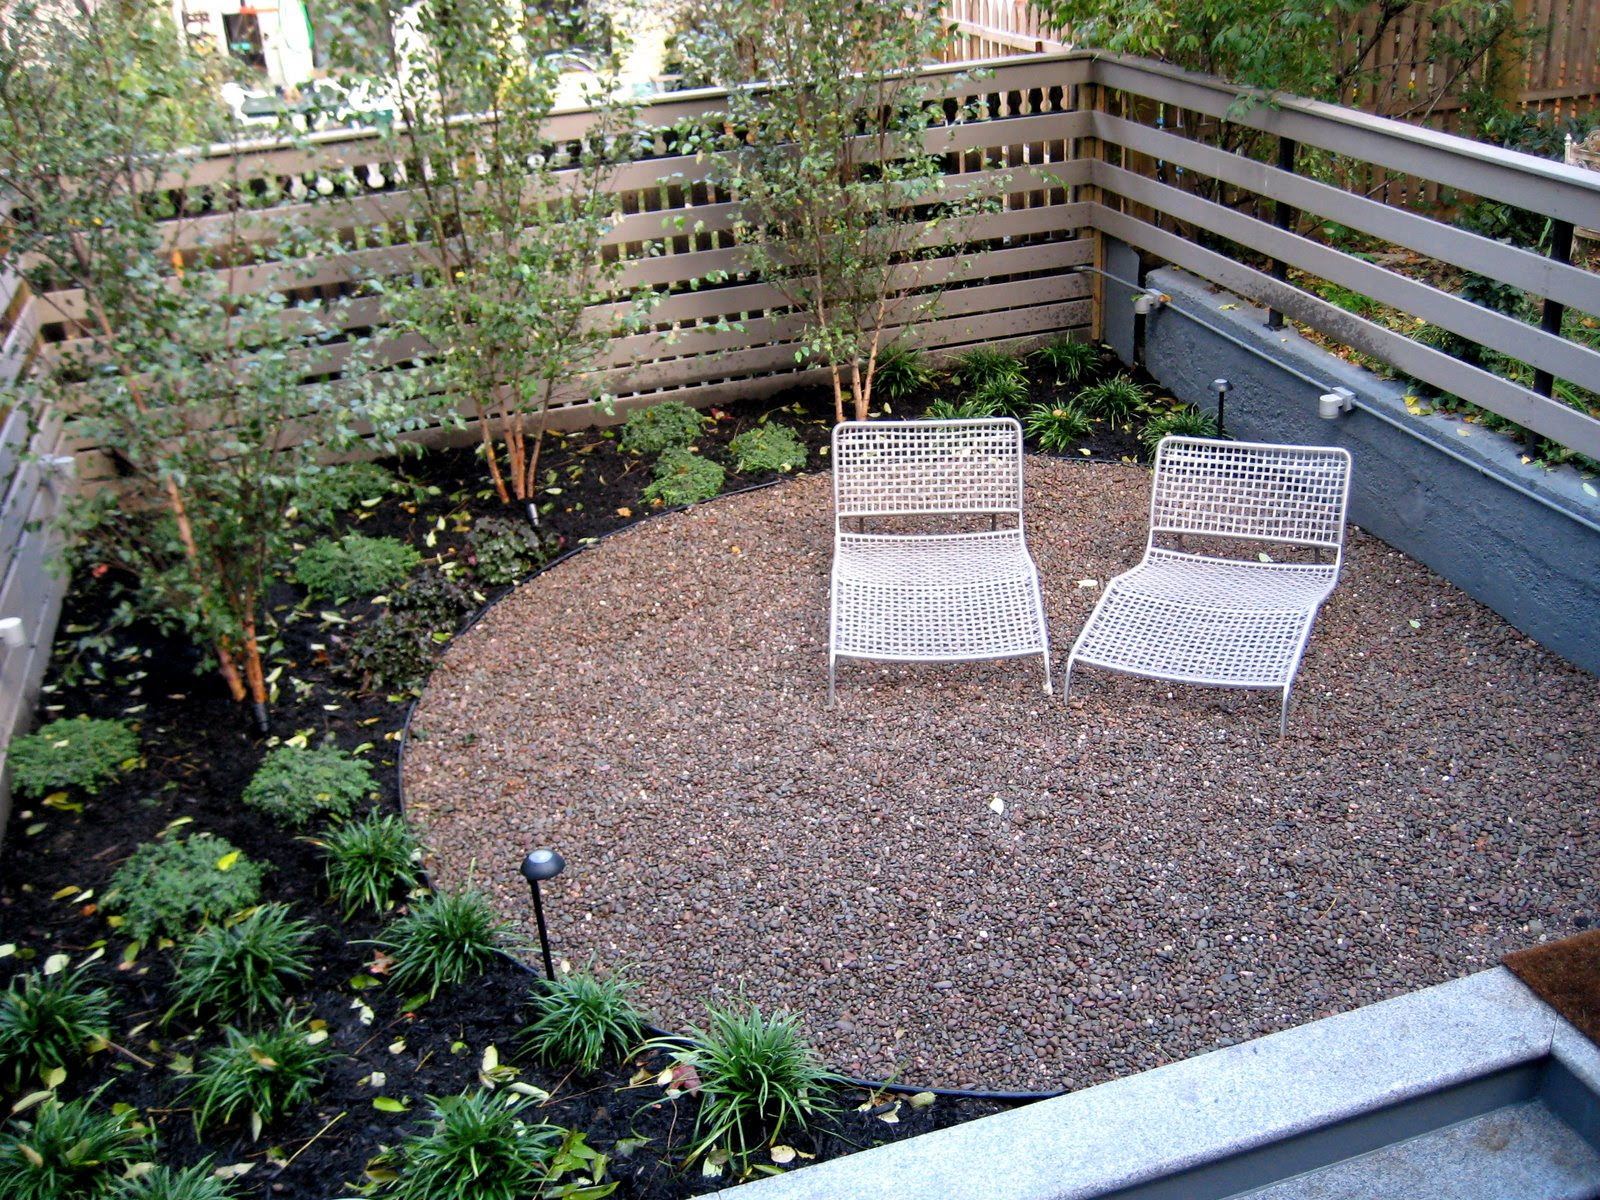 Secret Landscaping: Home landscaping designs using gravel ... on Pea Gravel Yard Ideas id=67299